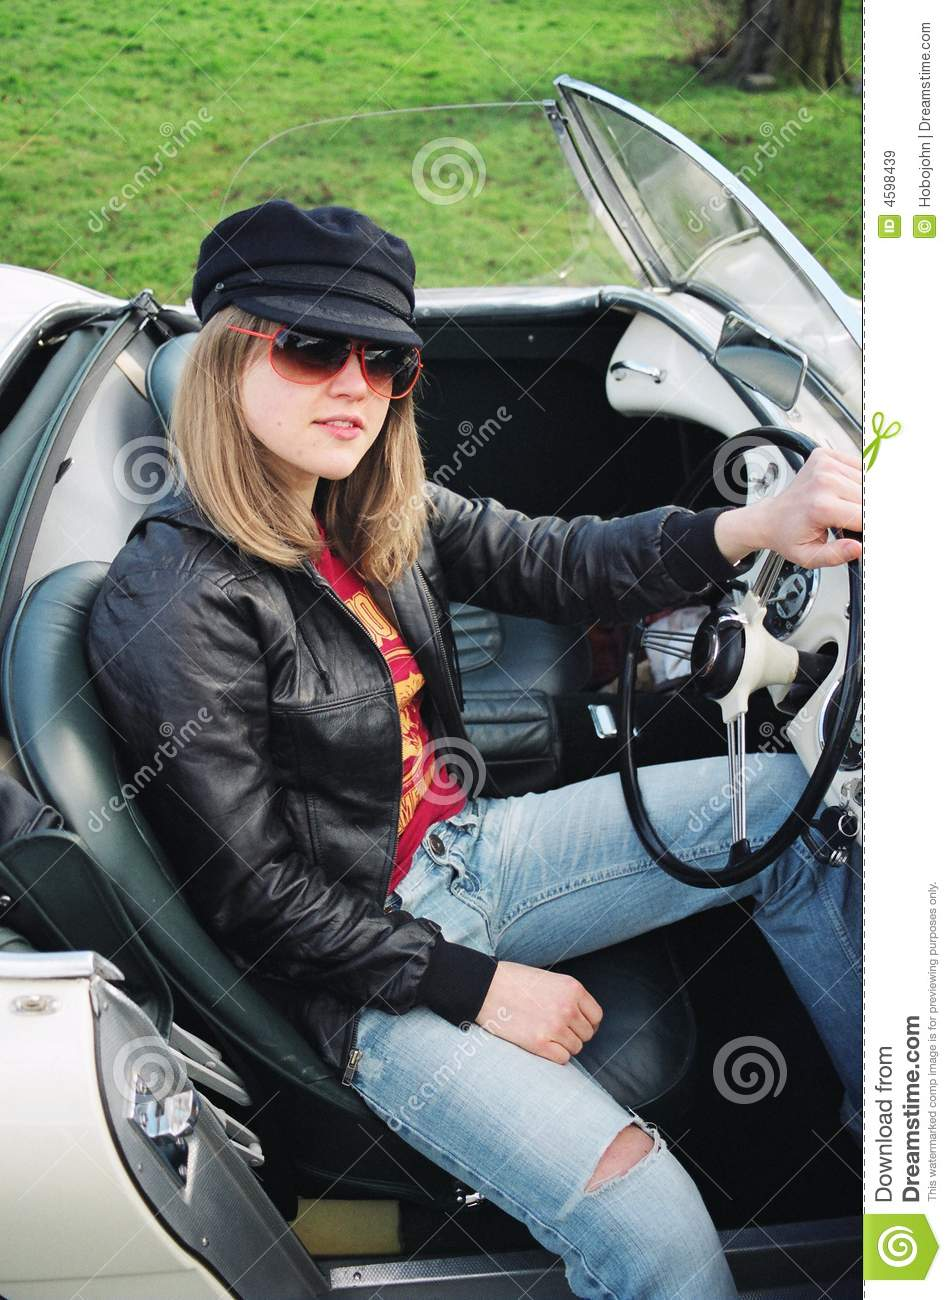 Hot blonde in a cabrio car stock photo. Image of posing